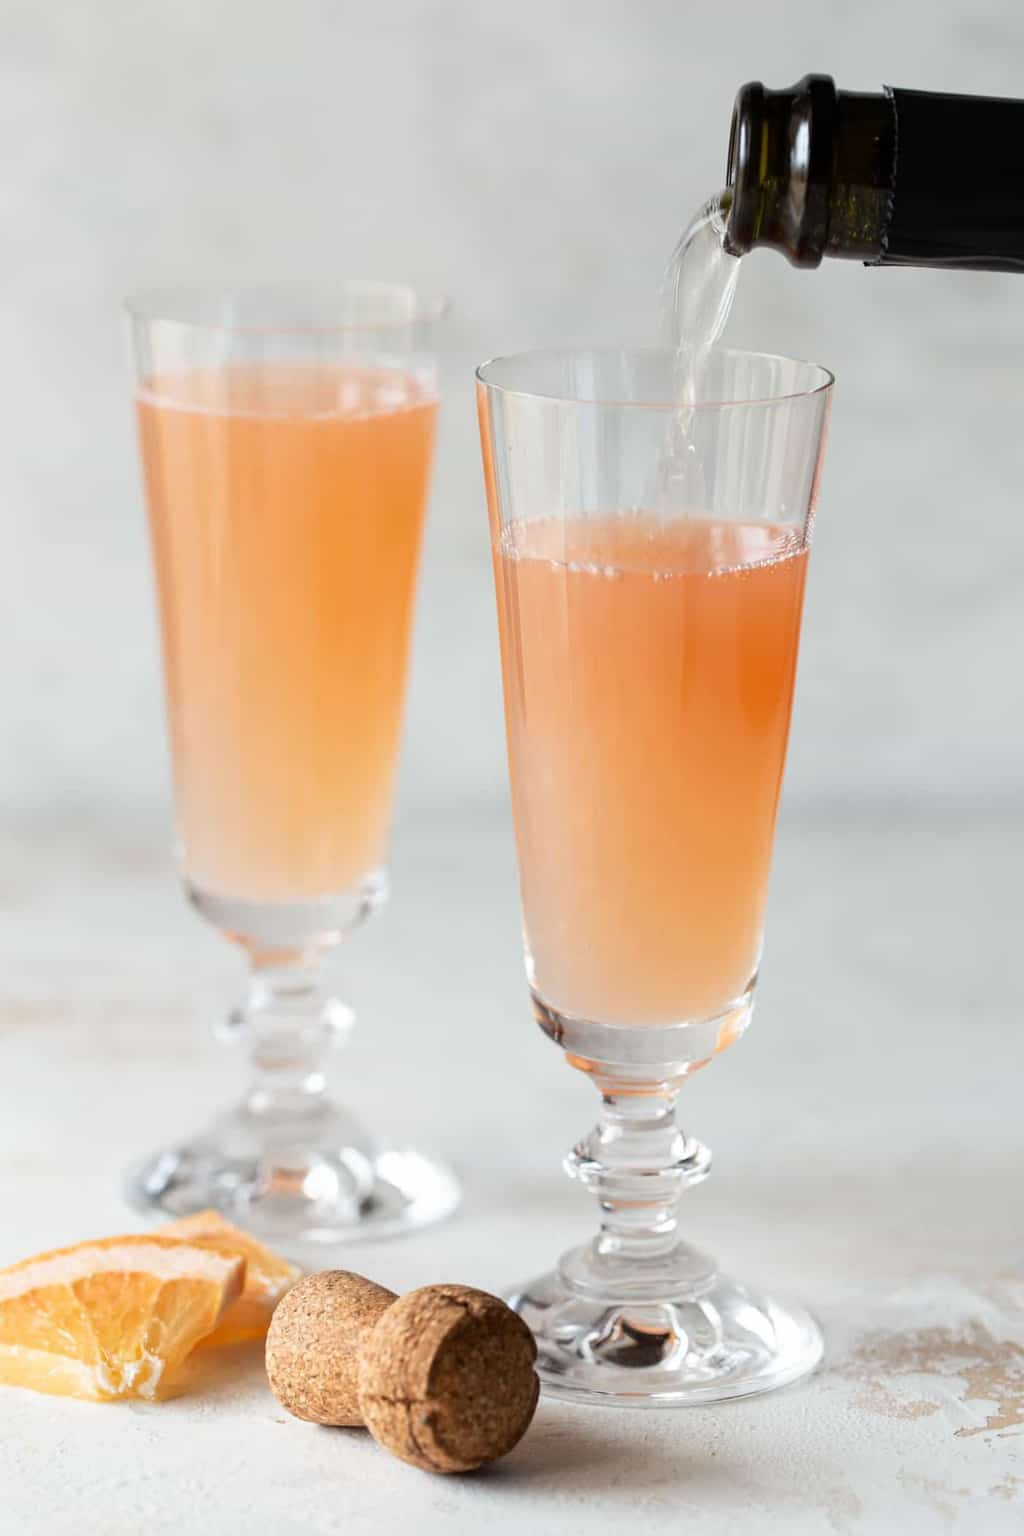 2 champagne flutes filled with mimosa on a white background.